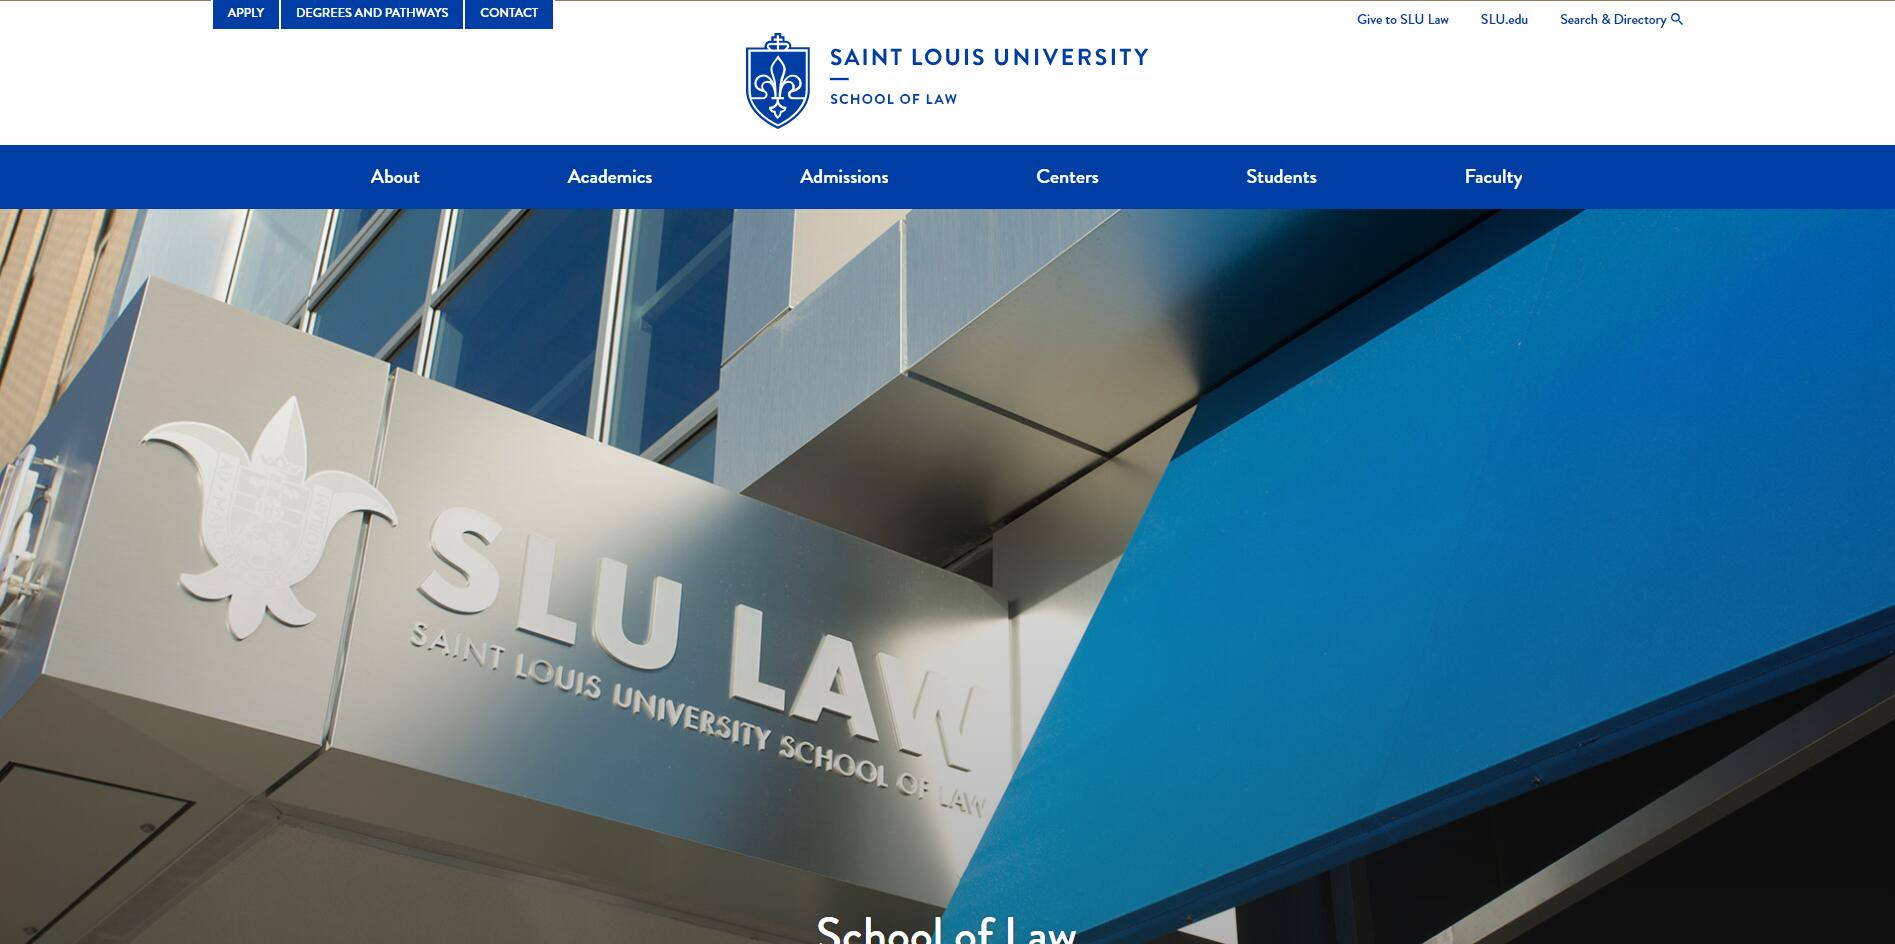 The School of Law at St. Louis University